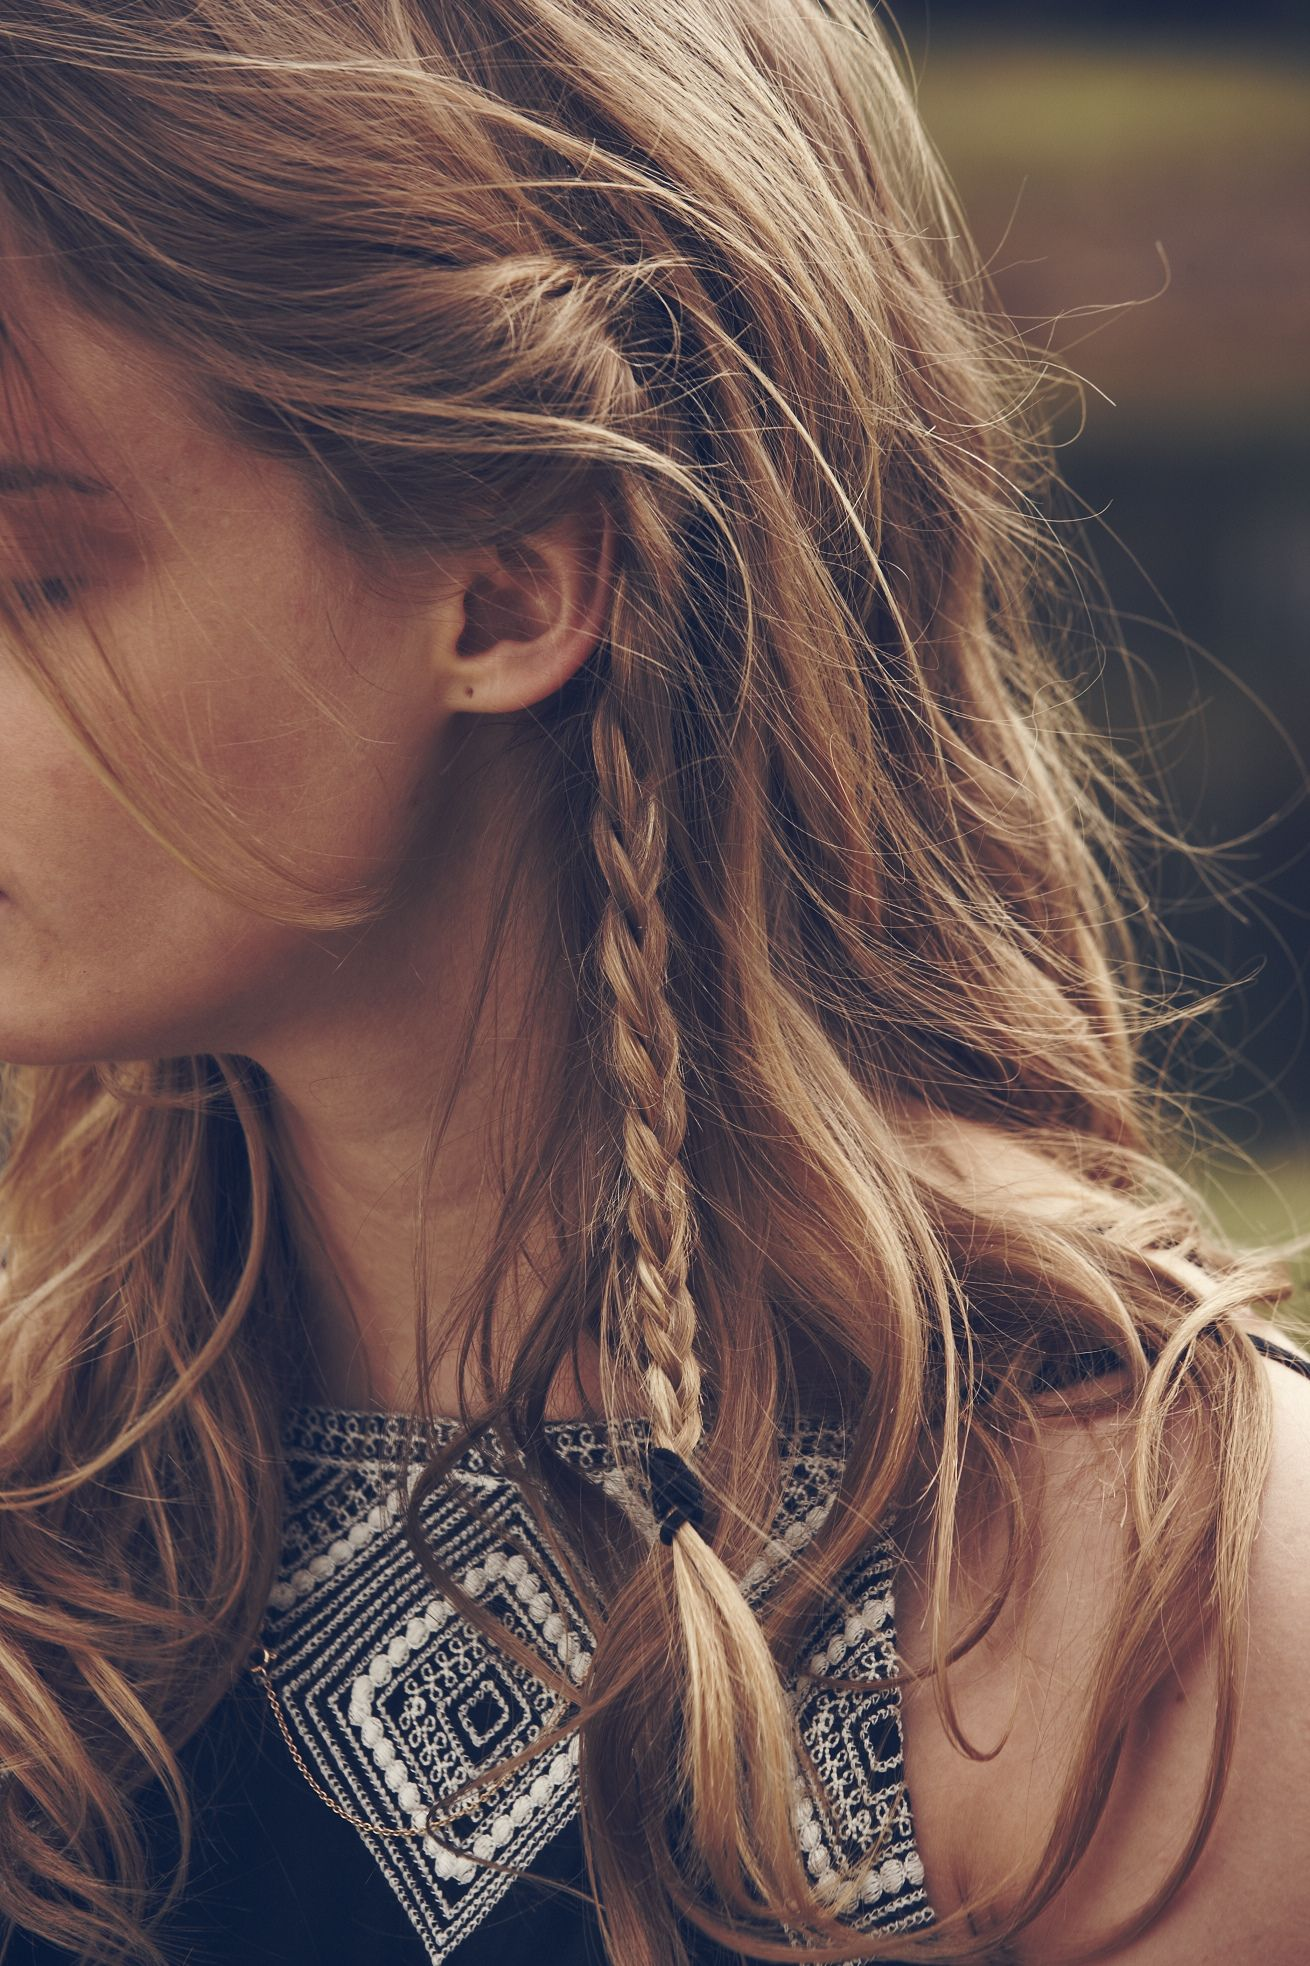 Plait front sections of your hair to keep it from falling in your face during your favourite band's set.